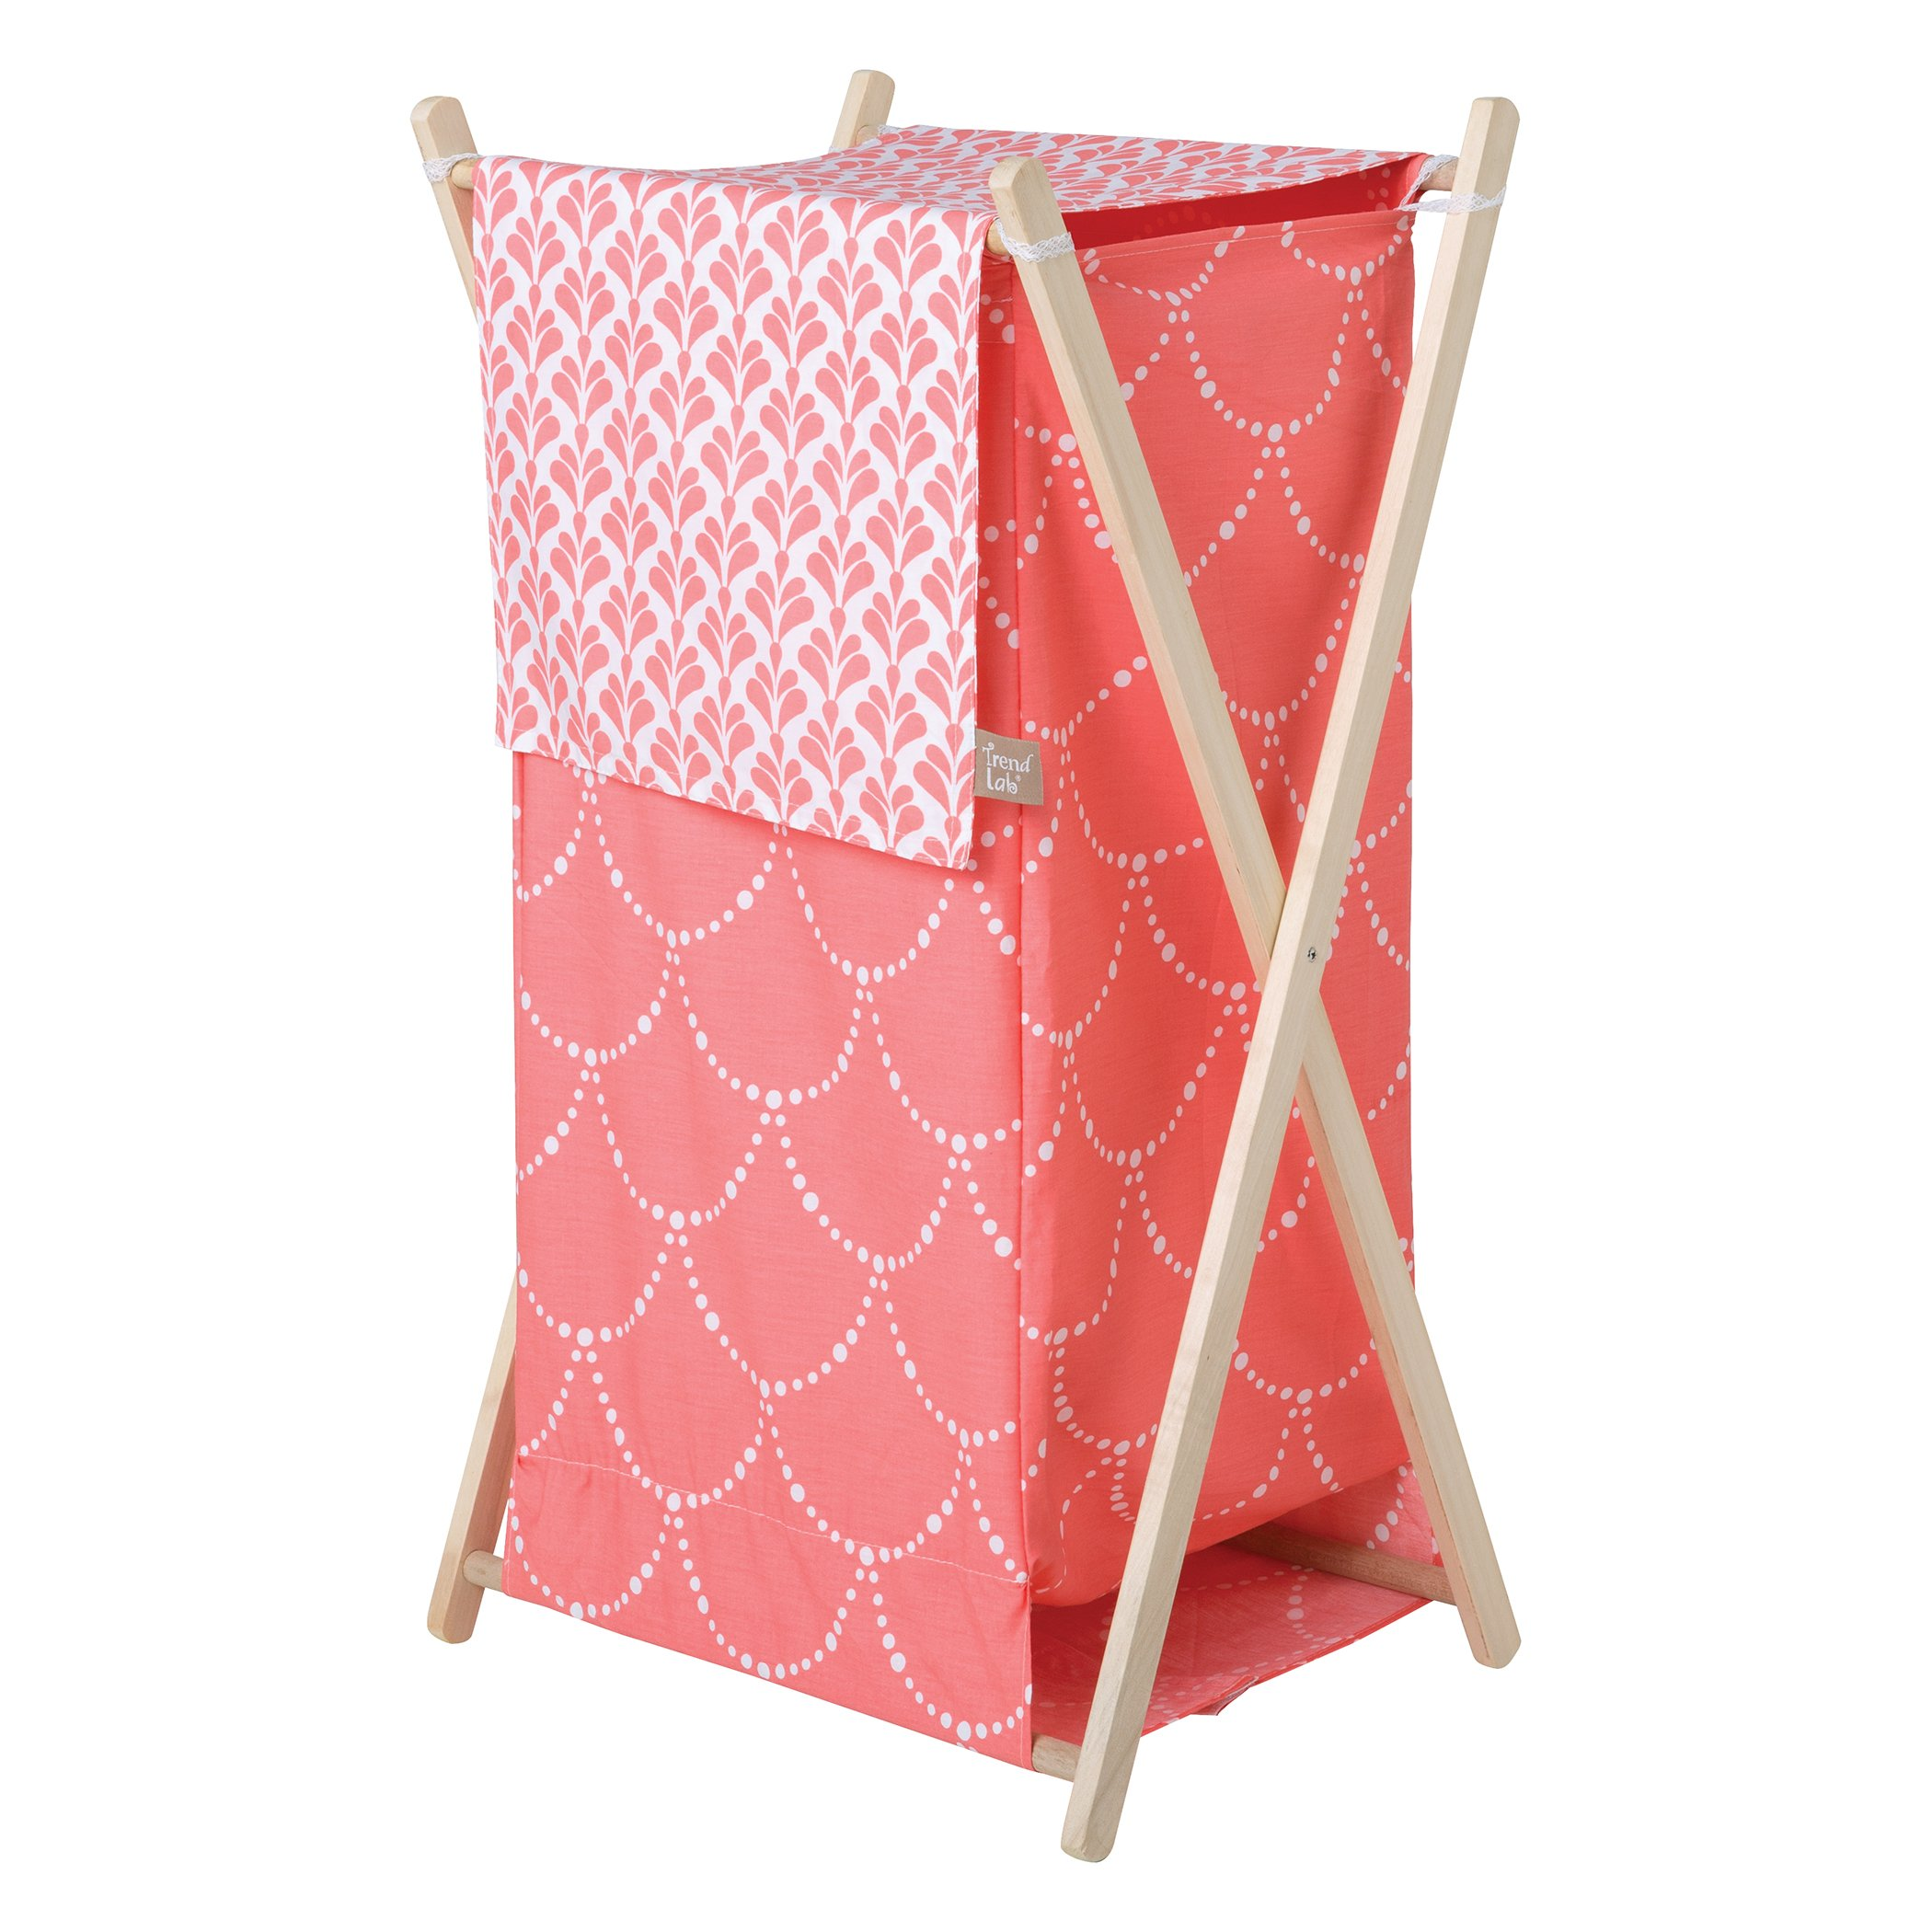 Trend Lab Shell Hamper Set, Coral, White by Trend Lab